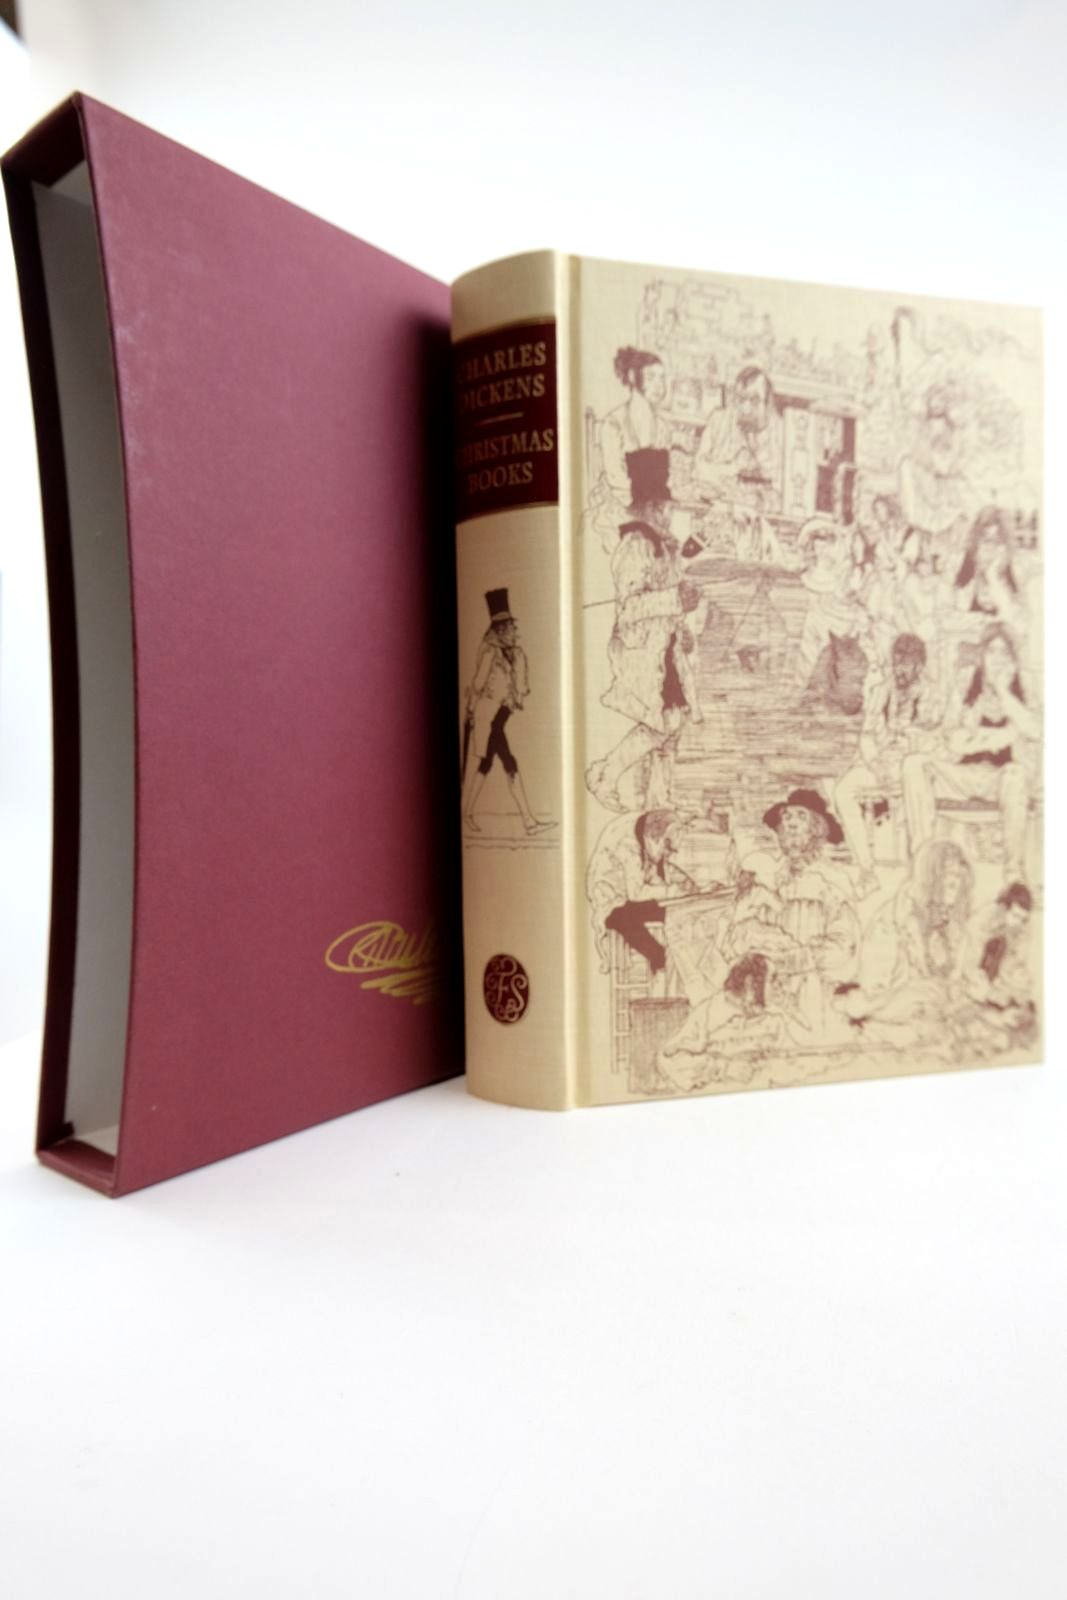 Photo of CHRISTMAS BOOKS written by Dickens, Charles Hibbert, Christopher illustrated by Keeping, Charles published by Folio Society (STOCK CODE: 2133235)  for sale by Stella & Rose's Books